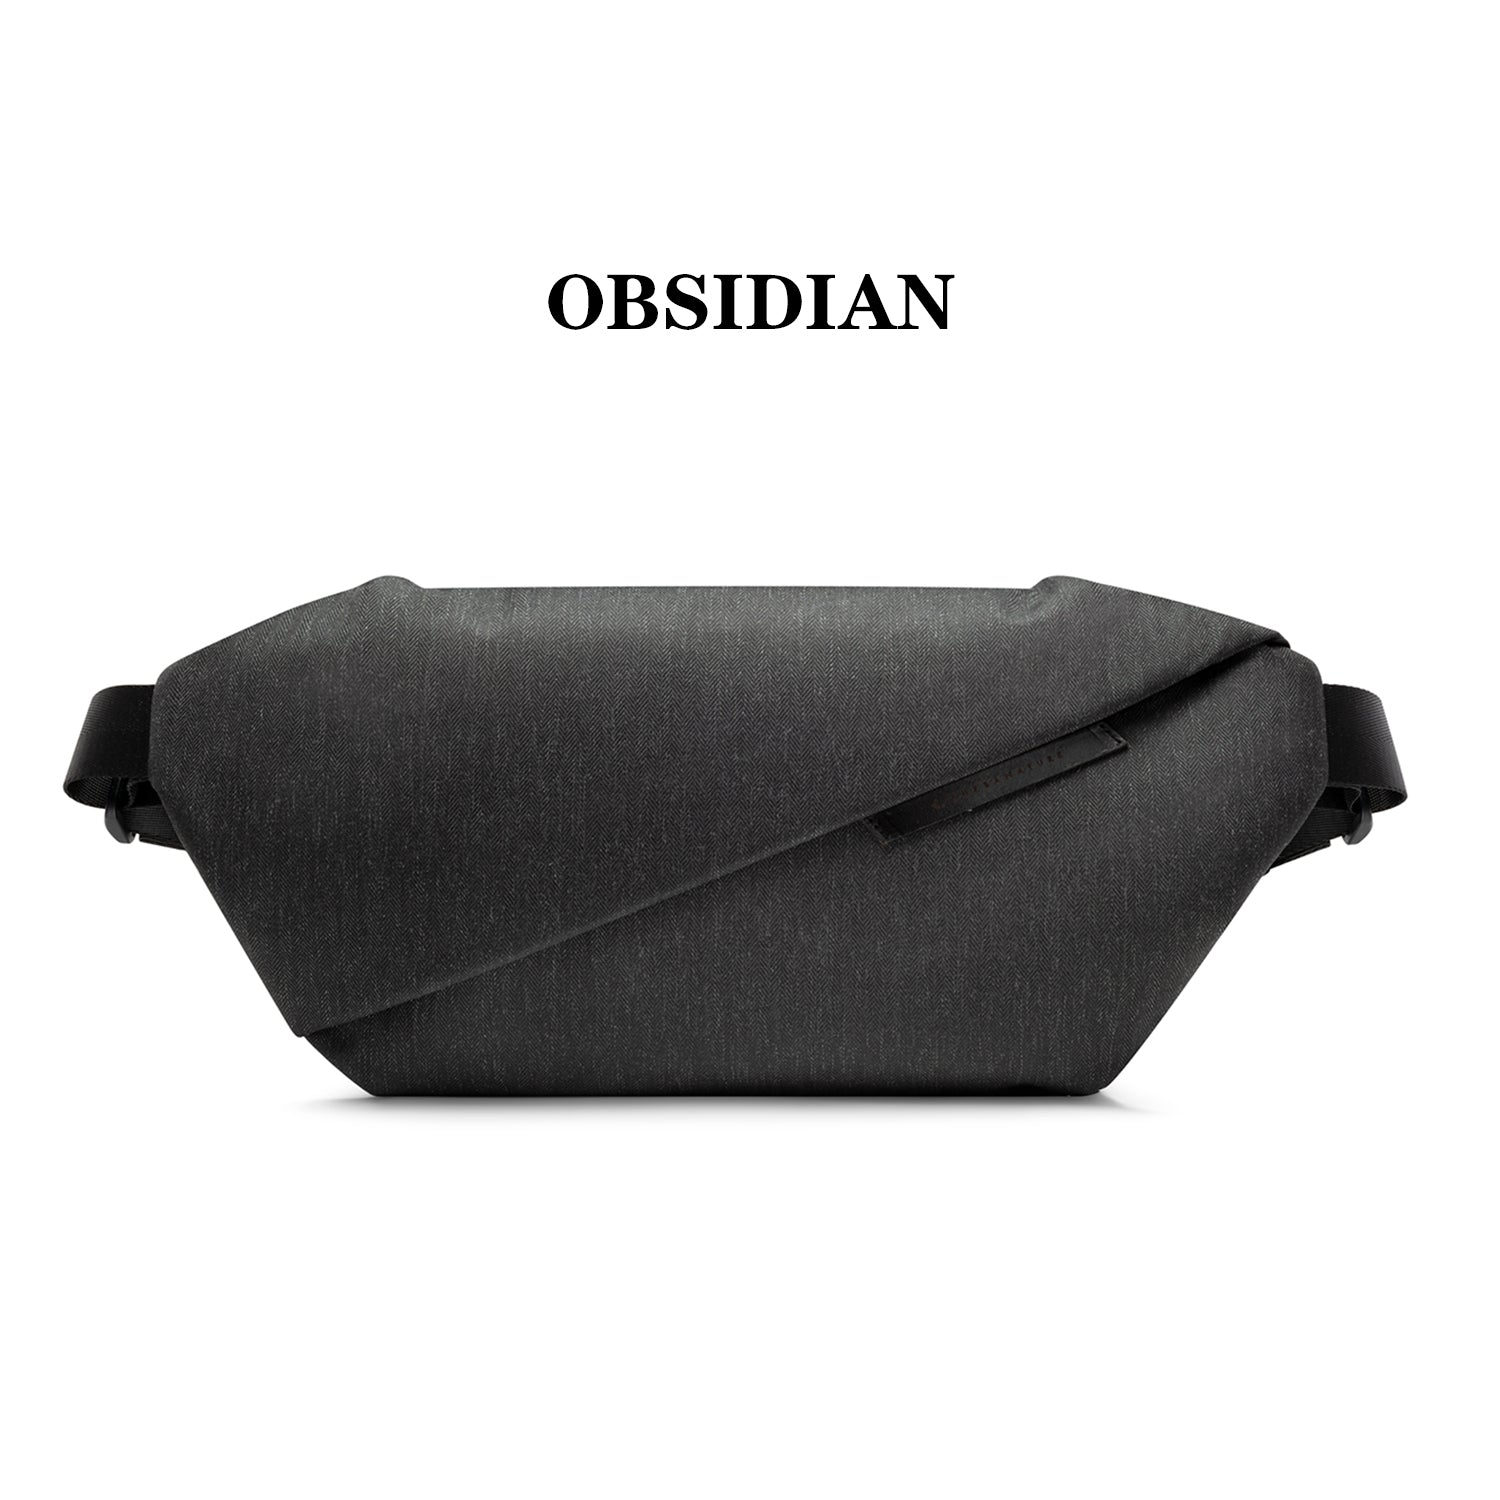 NIID X URBANATURE Radiant R0 Plus Sling Bag.